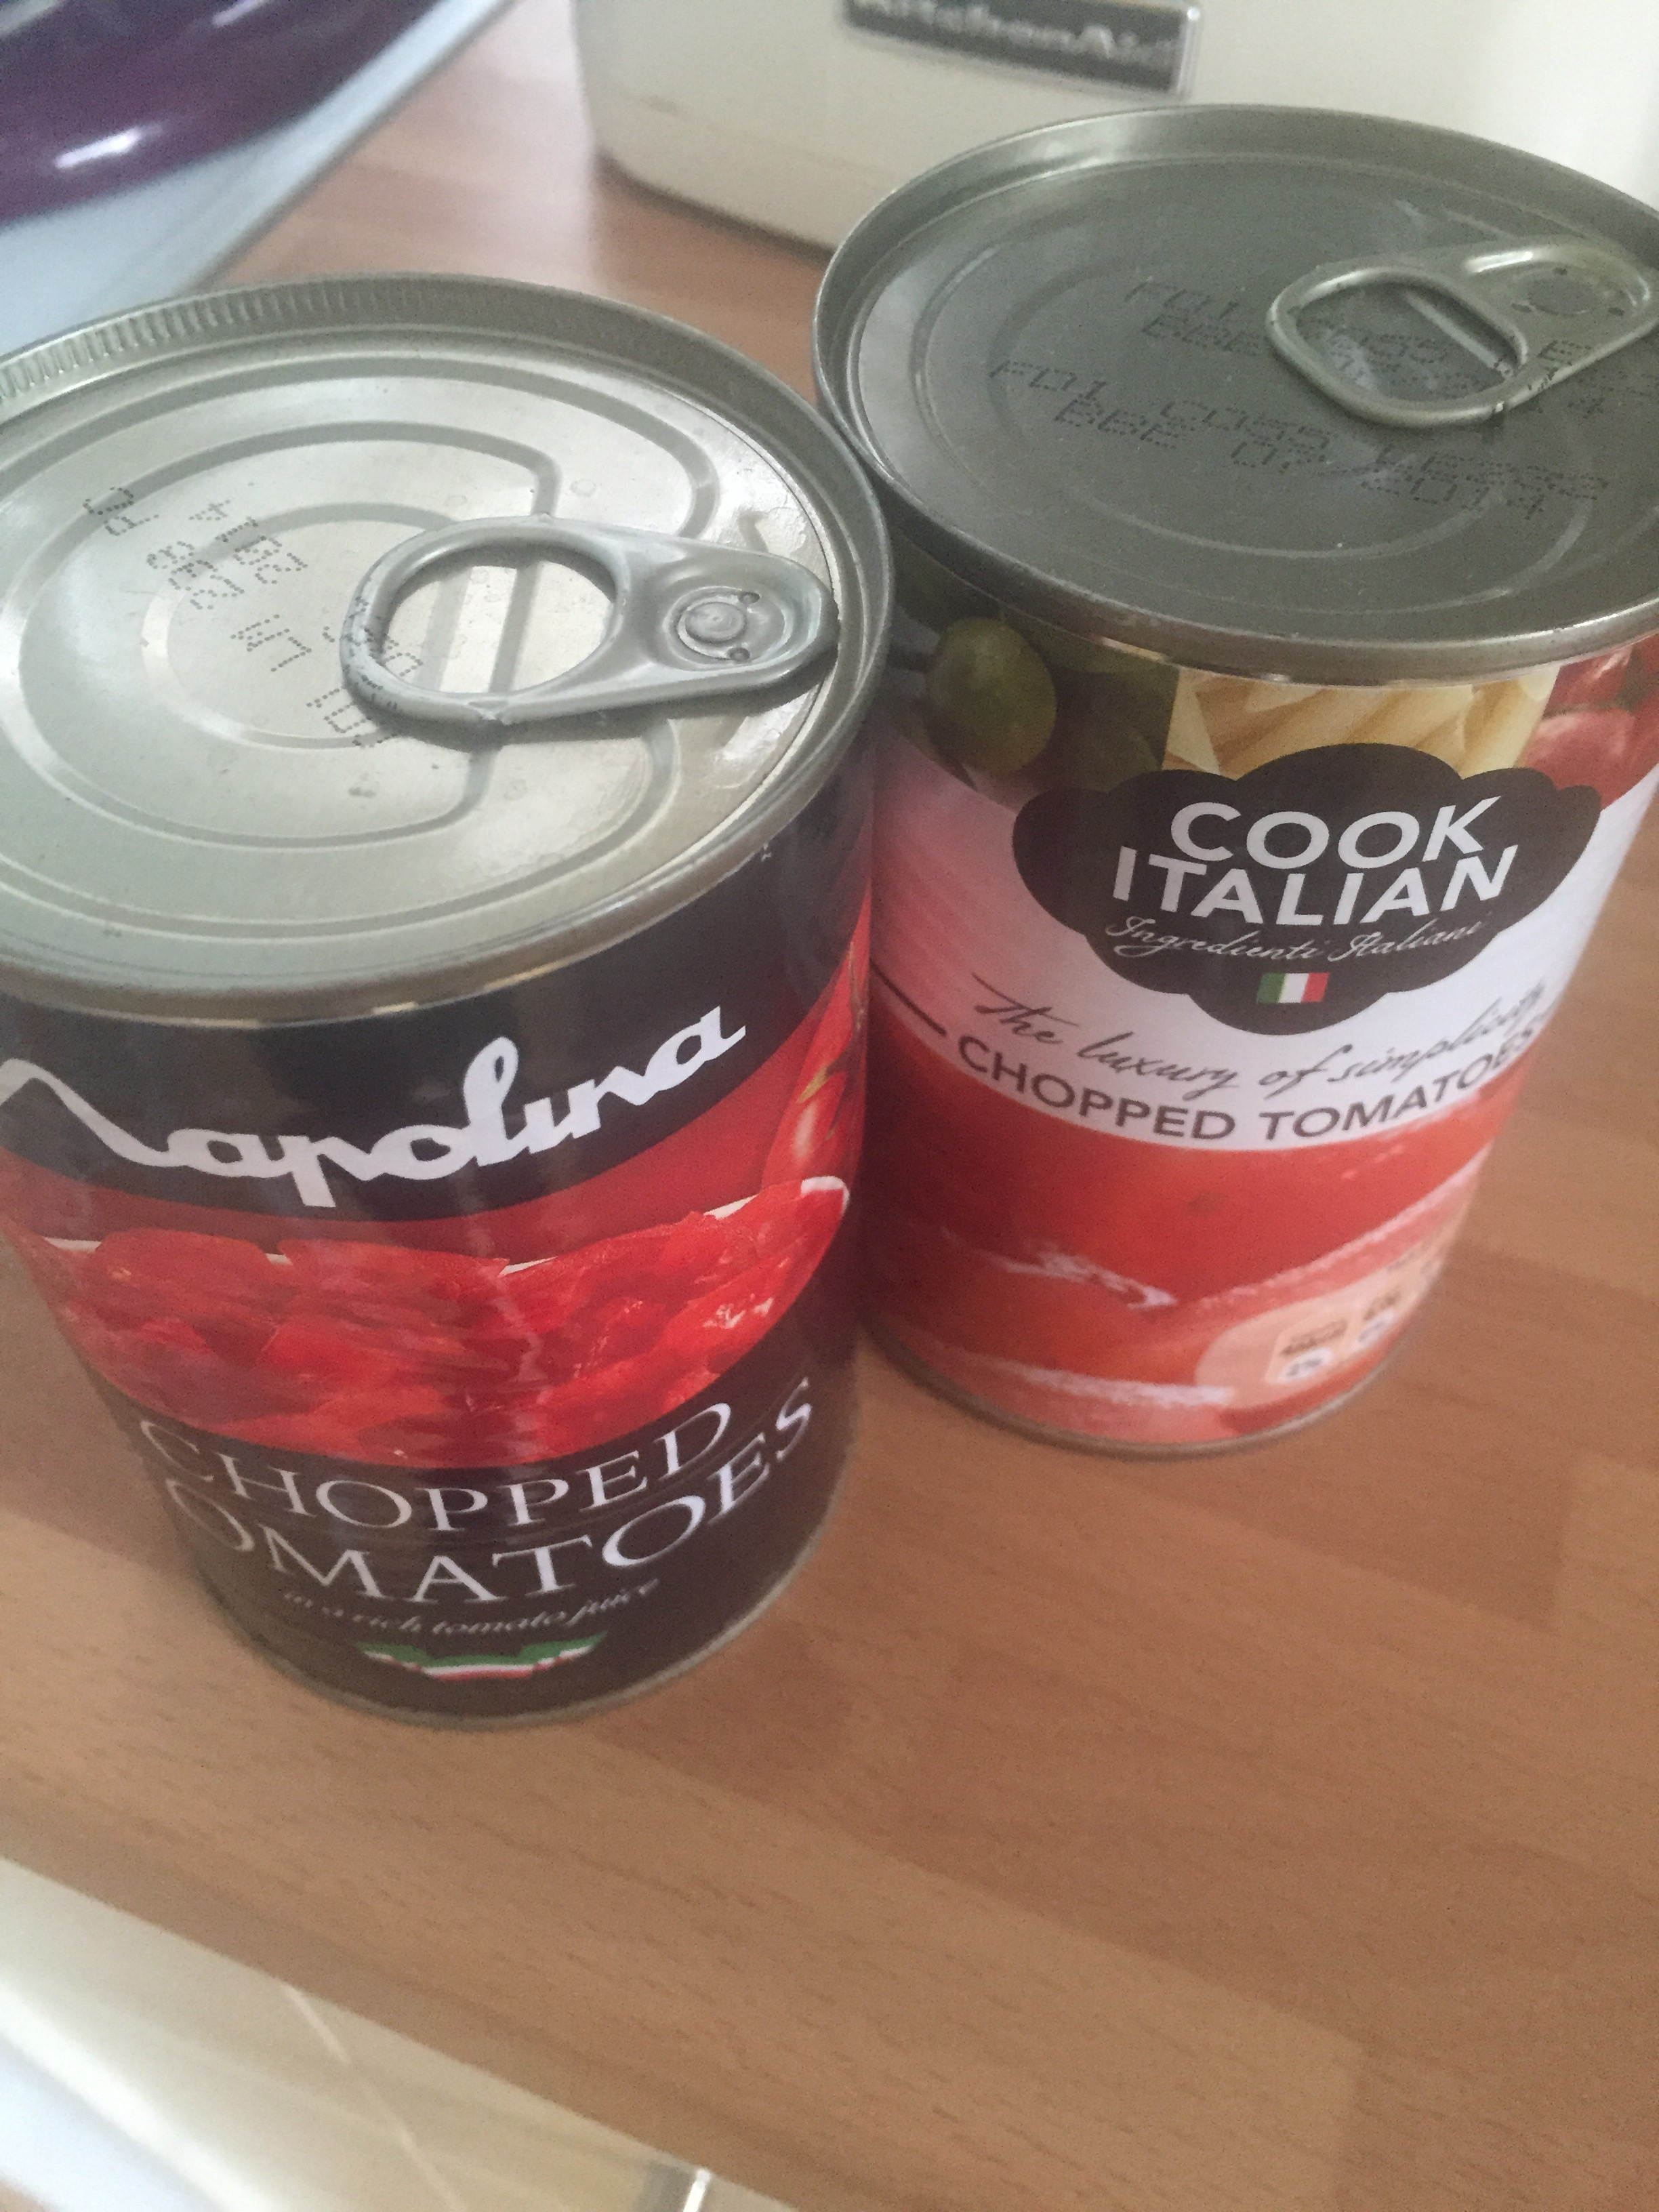 2 tins of chopped tomatoes